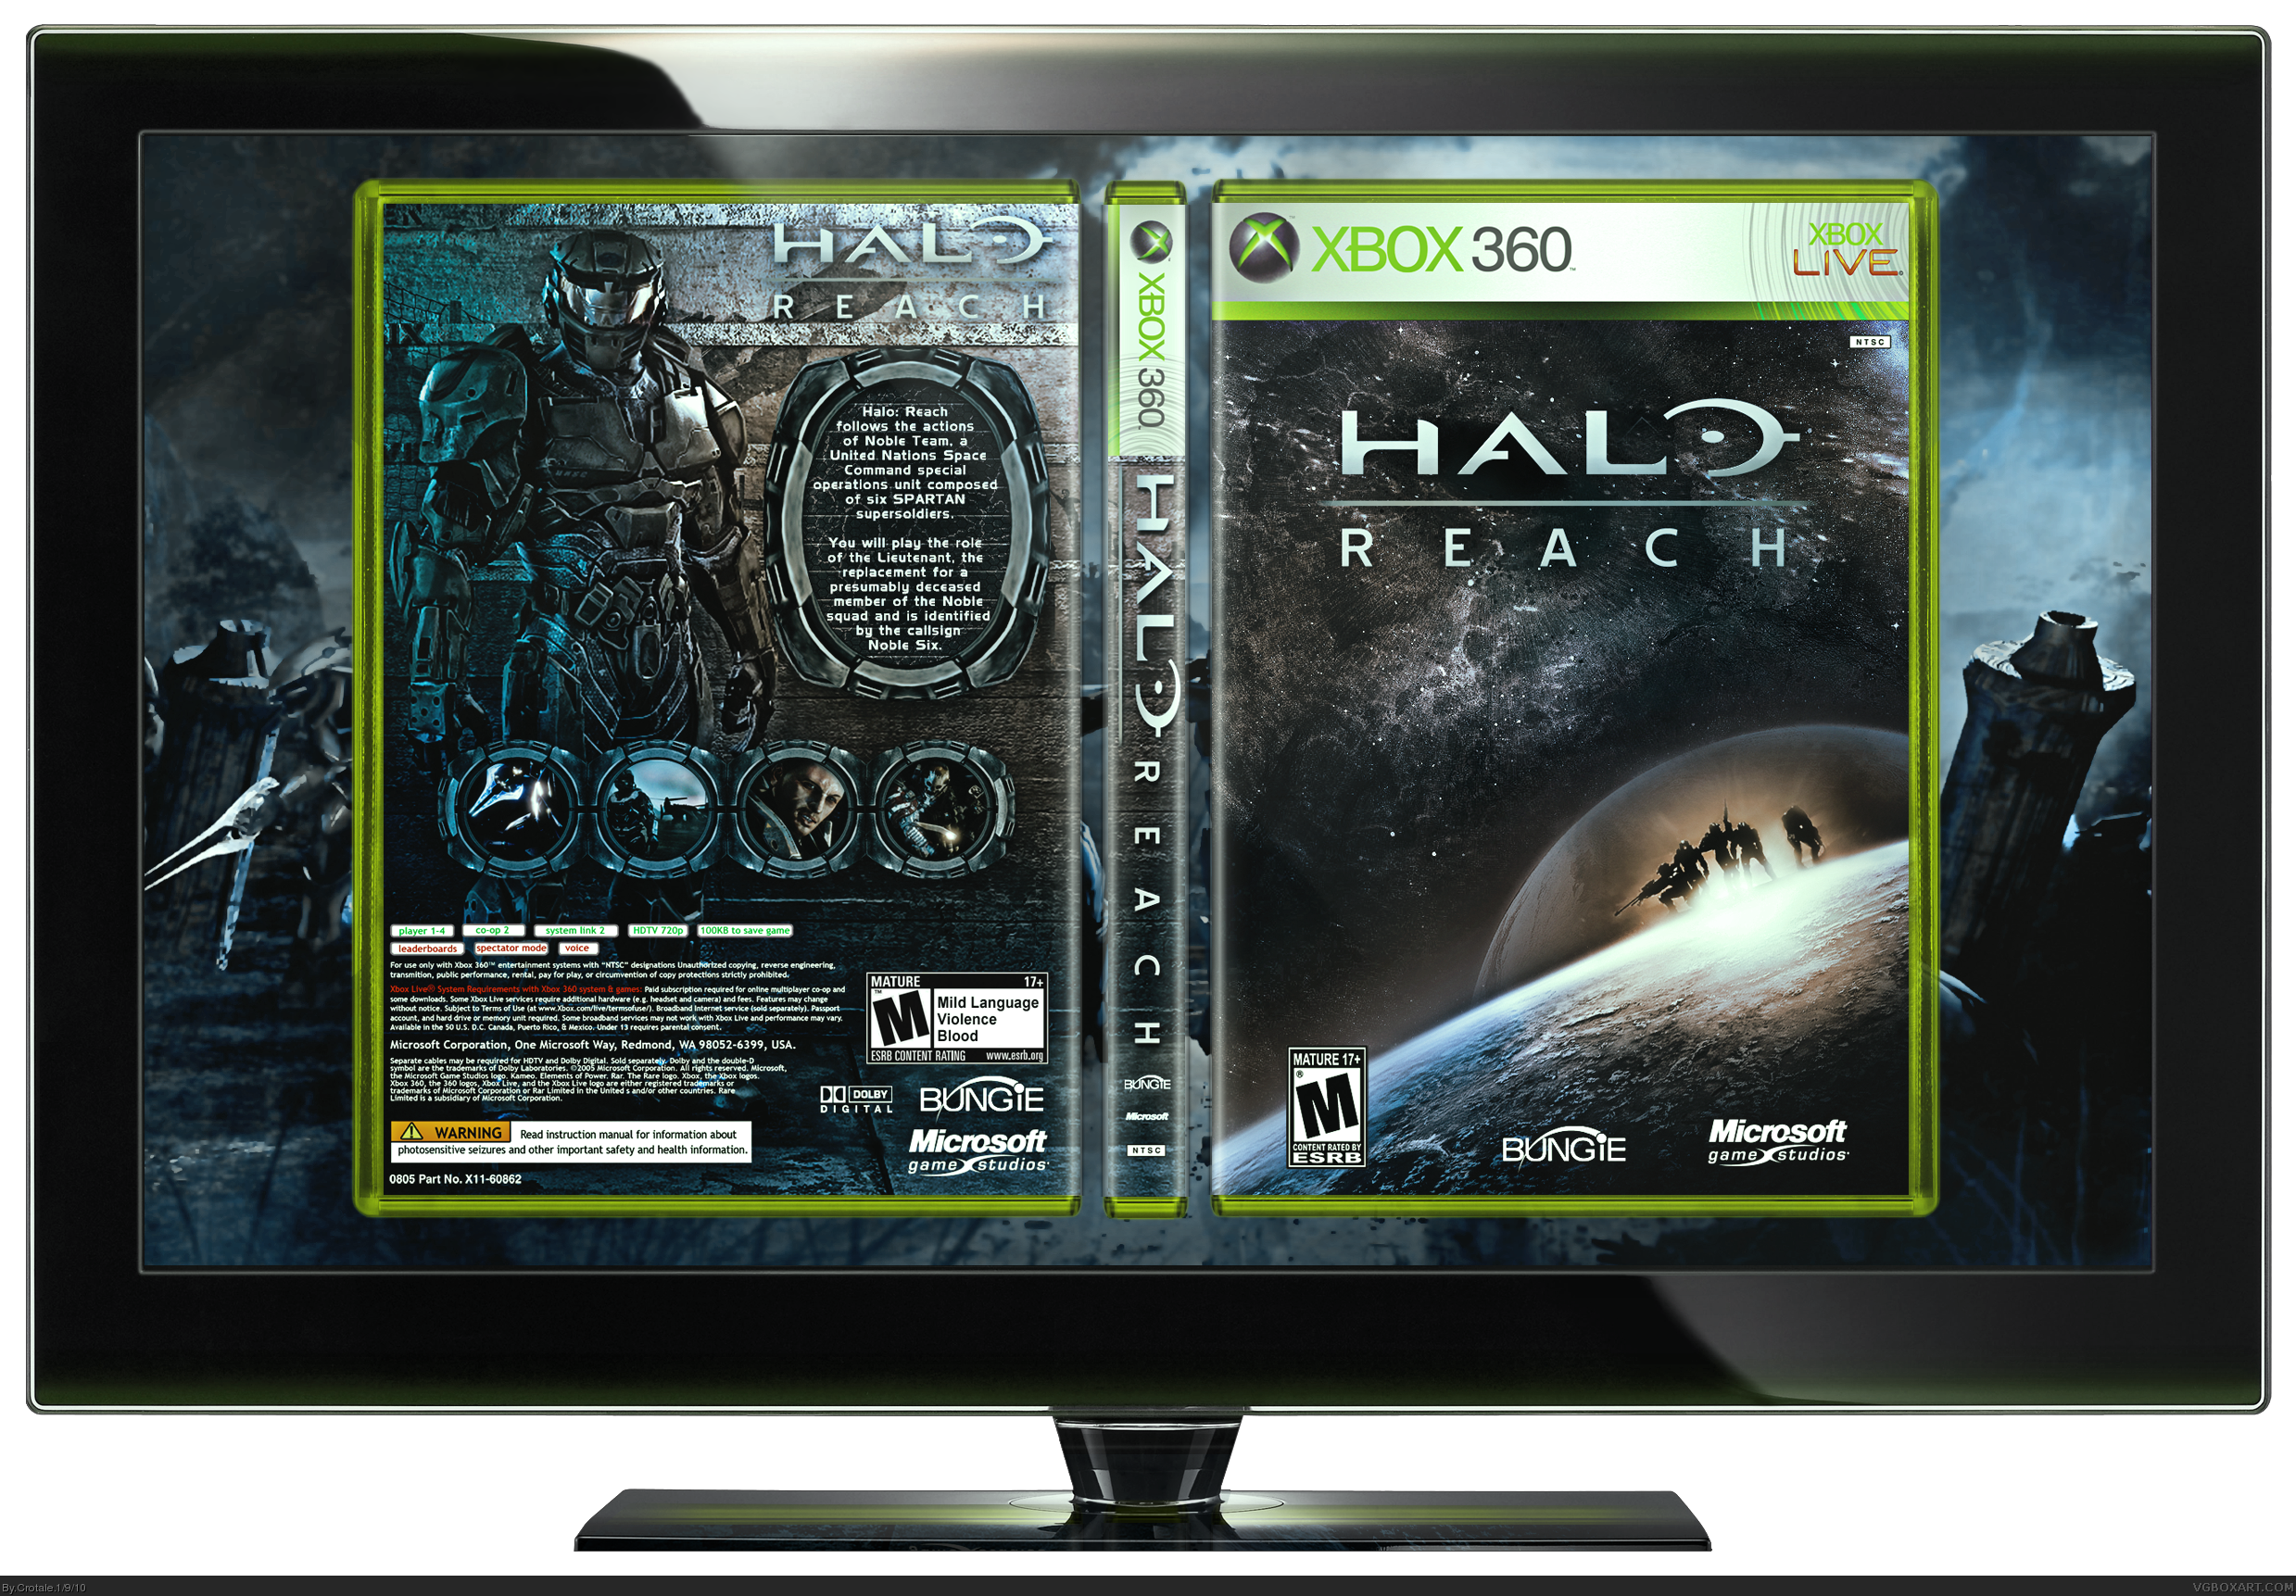 Halo: Reach box cover